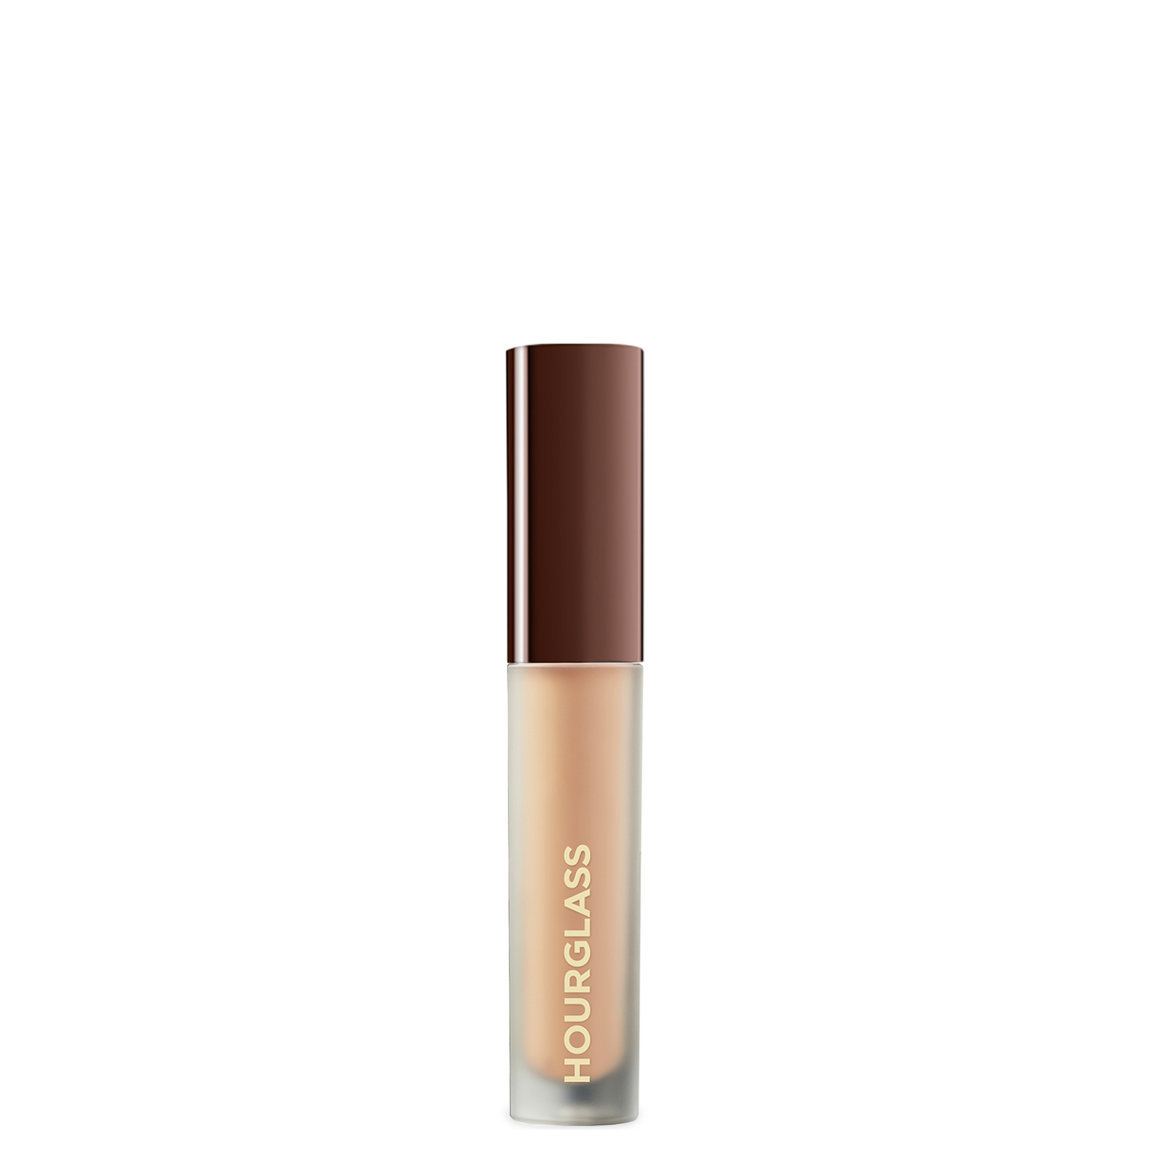 Hourglass Vanish Airbrush Concealer Travel Cedar alternative view 1 - product swatch.